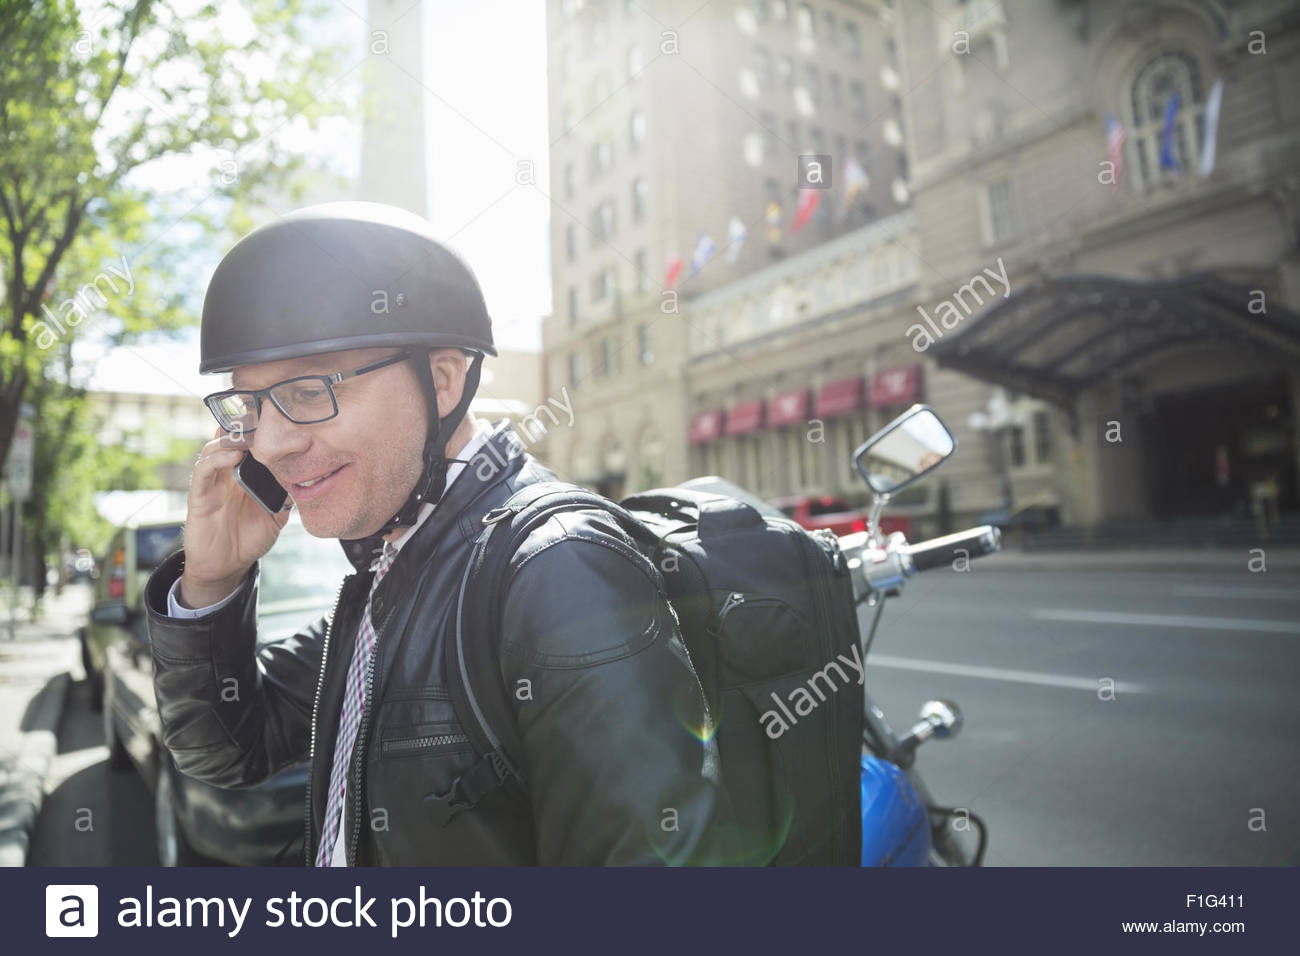 Businessman commuting with motorcycle talking cell phone - Stock Image